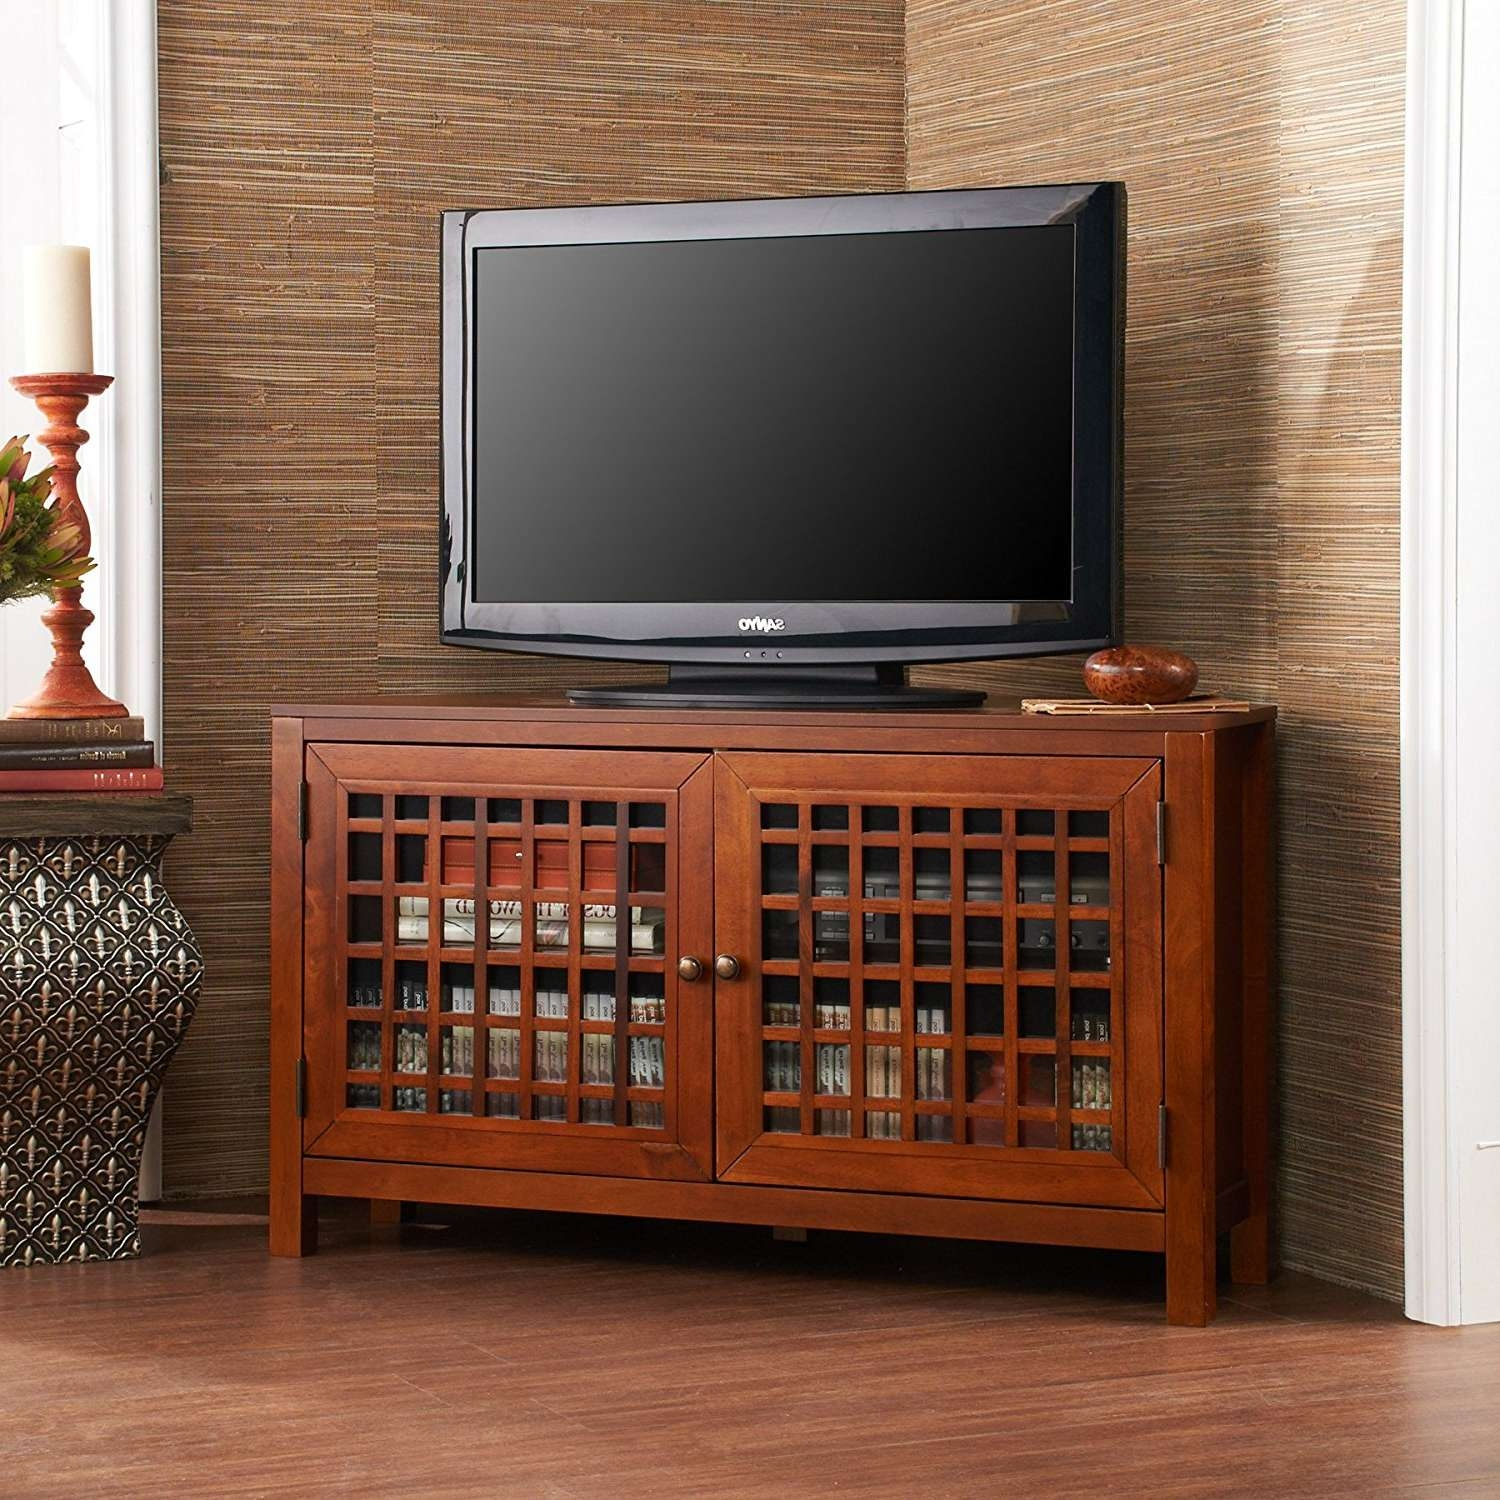 Tv : Wonderful 24 Inch Corner Tv Stands Mainstays Tv Stand For For 24 Inch Tv Stands (View 13 of 15)